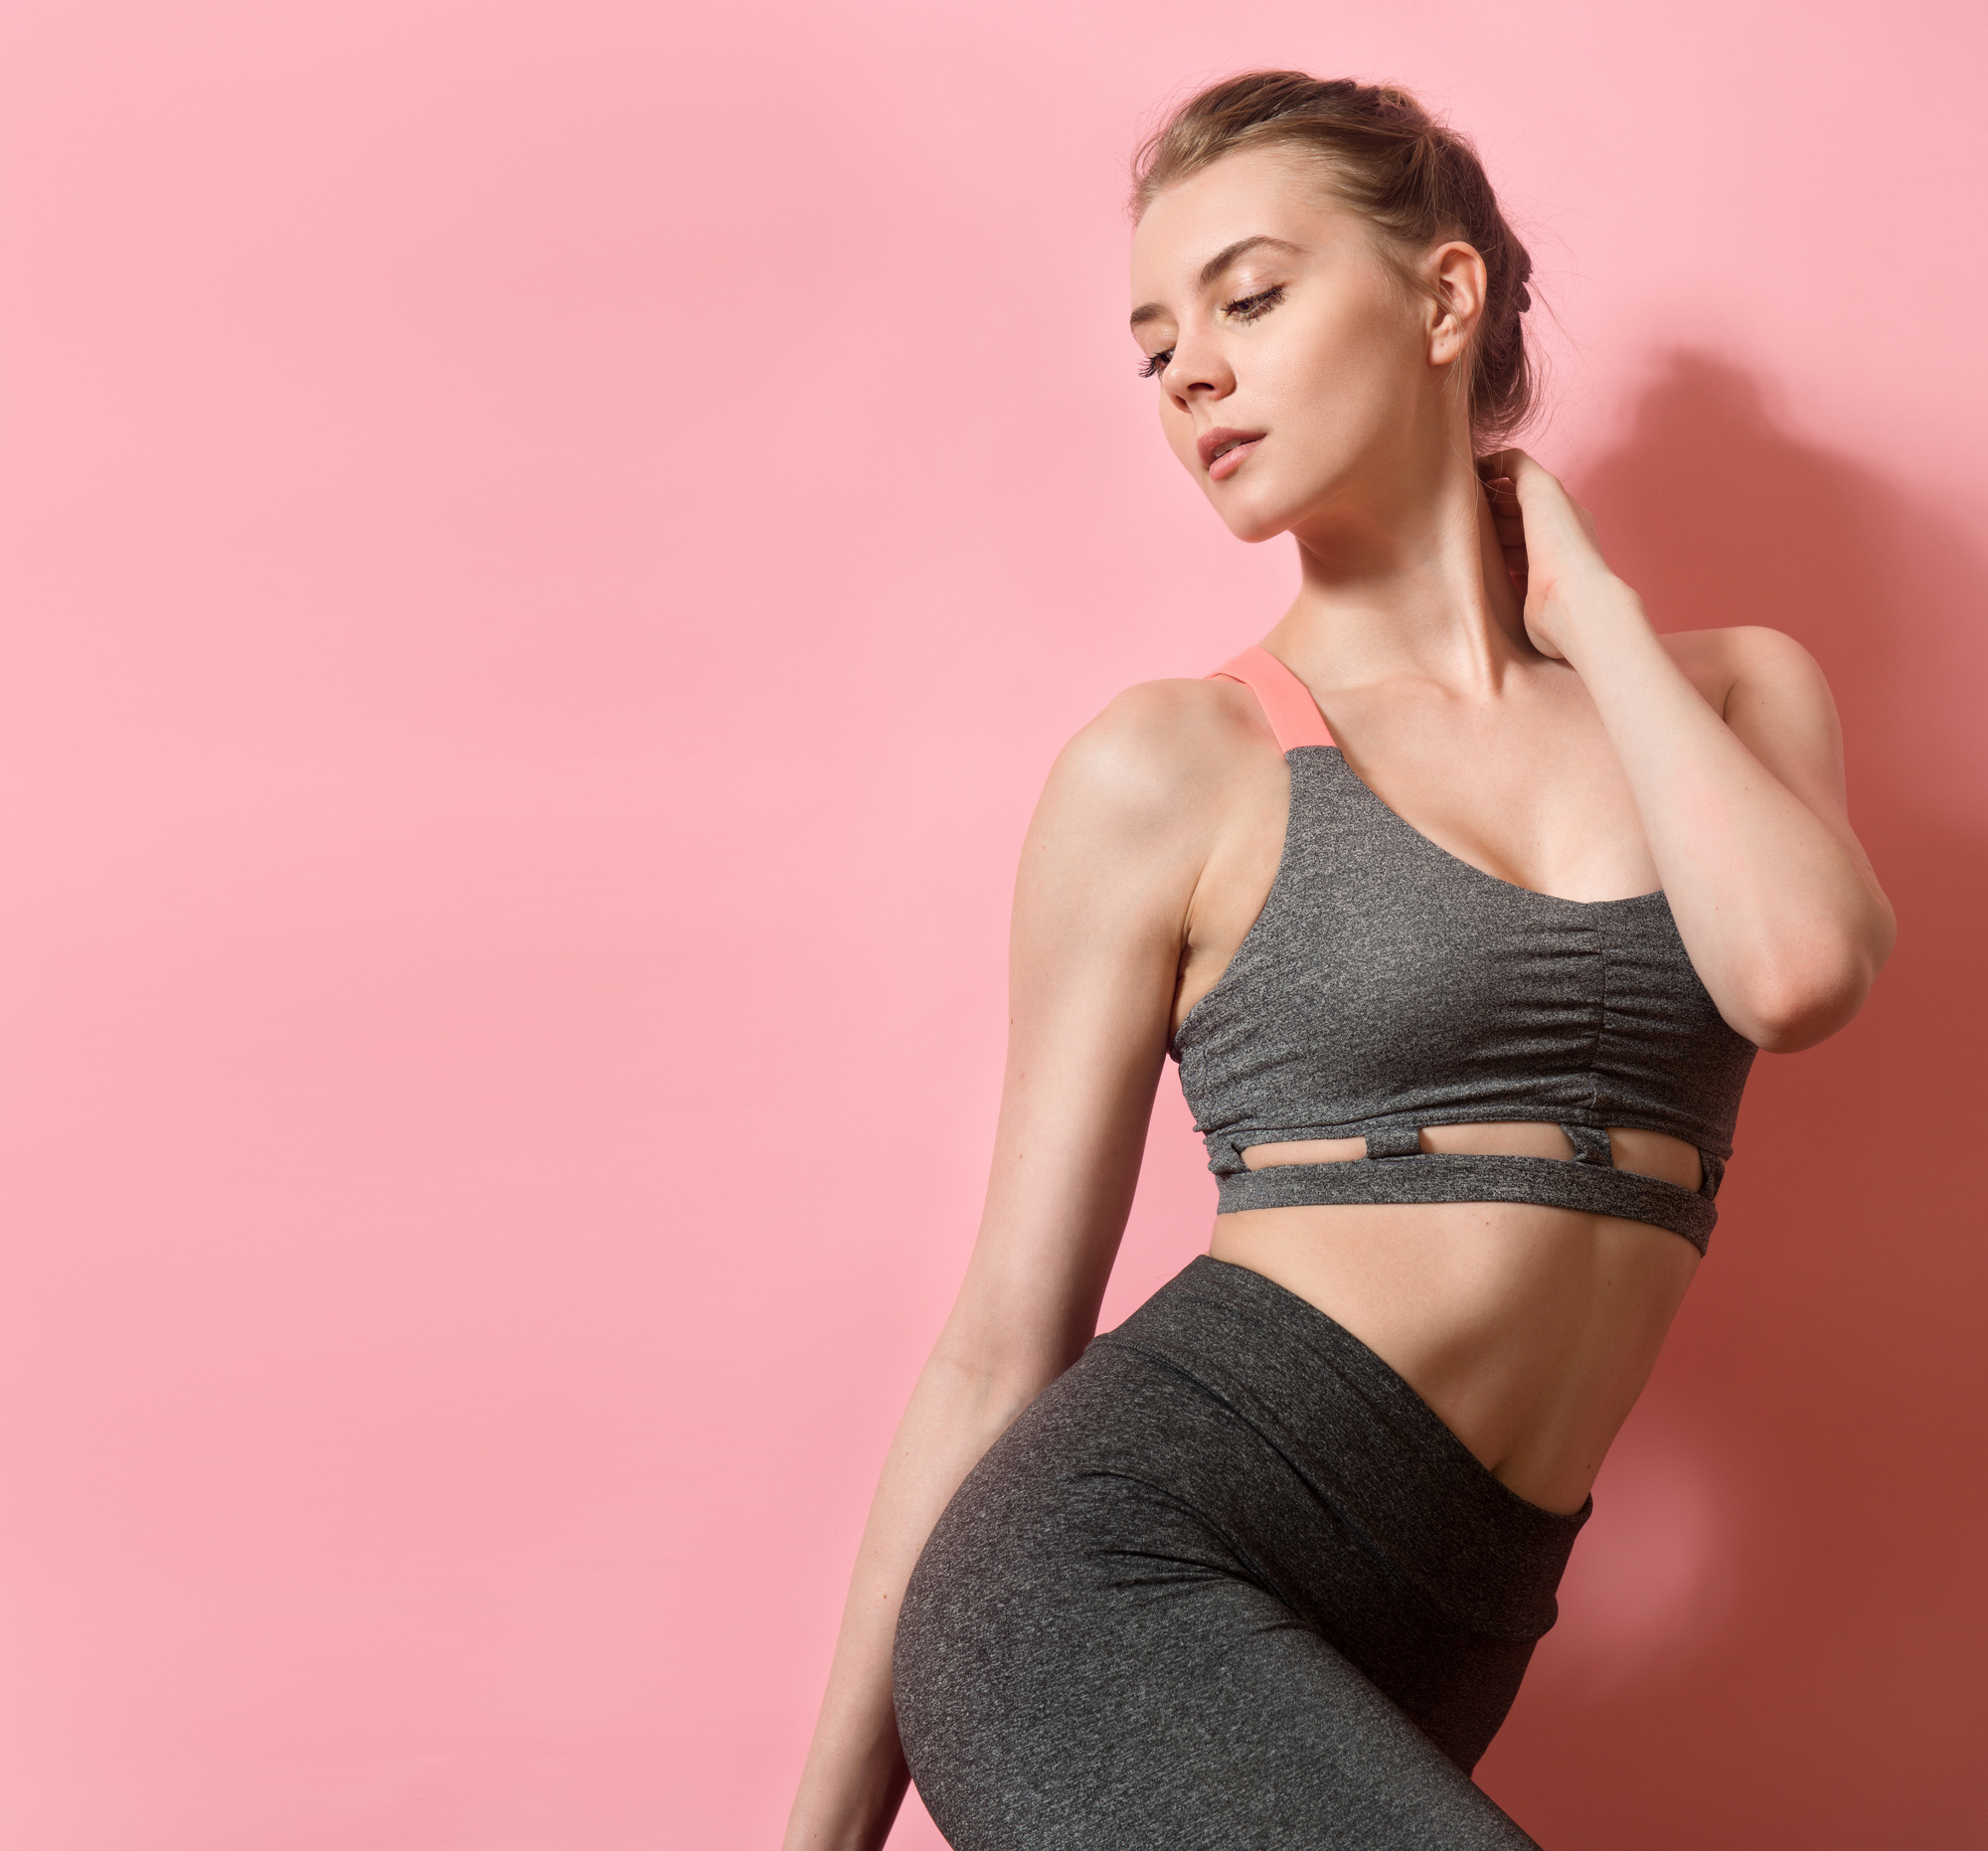 Do You Have a Cute Gym Look? Here Are 3 Ways to Look Better at the Gym